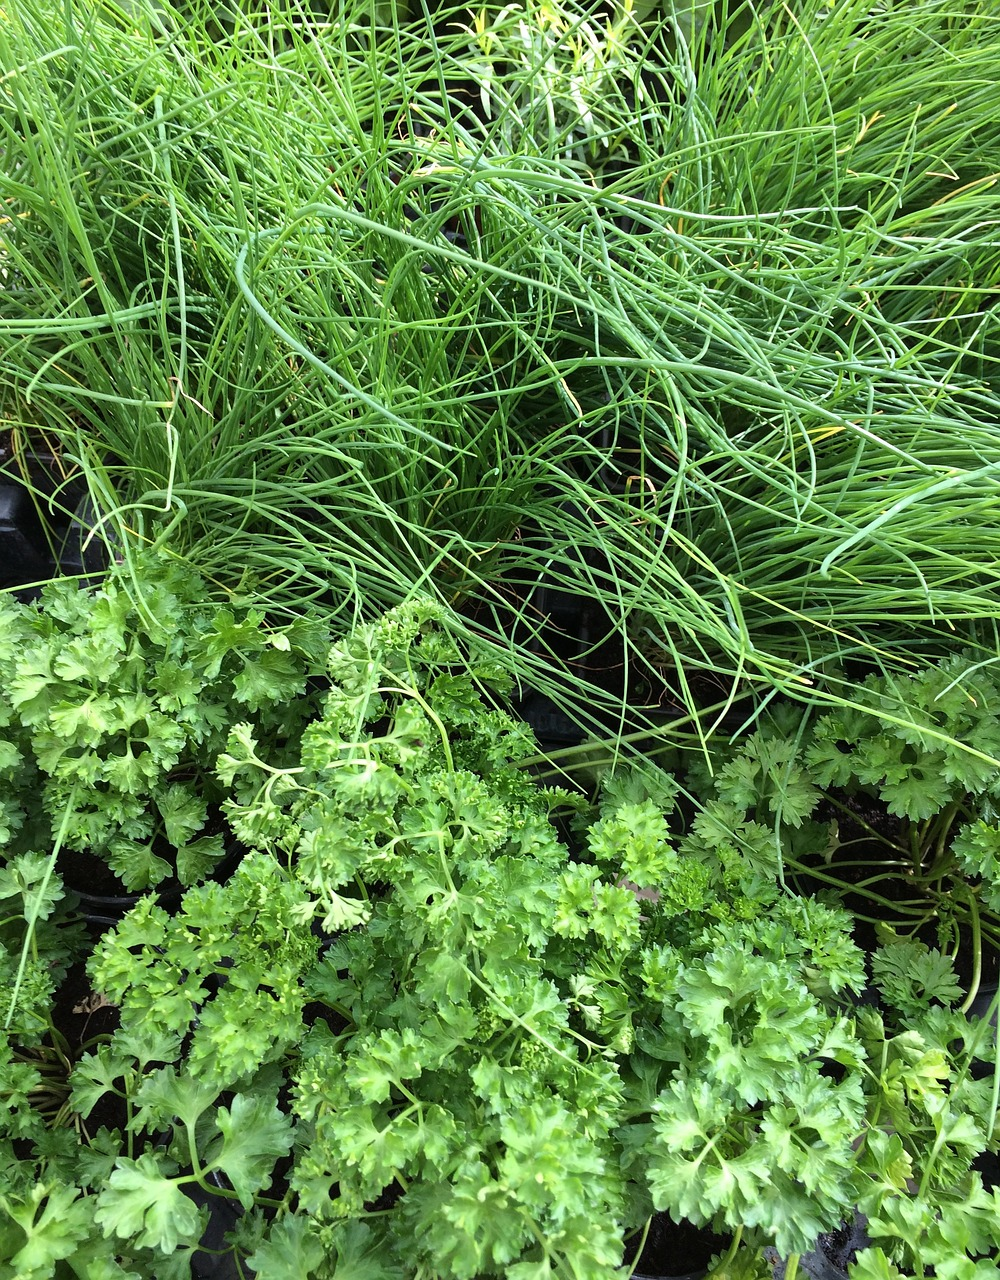 PARSLEY CHIVES VEGETABLE FRESH GREEN FREE PHOTO FROM